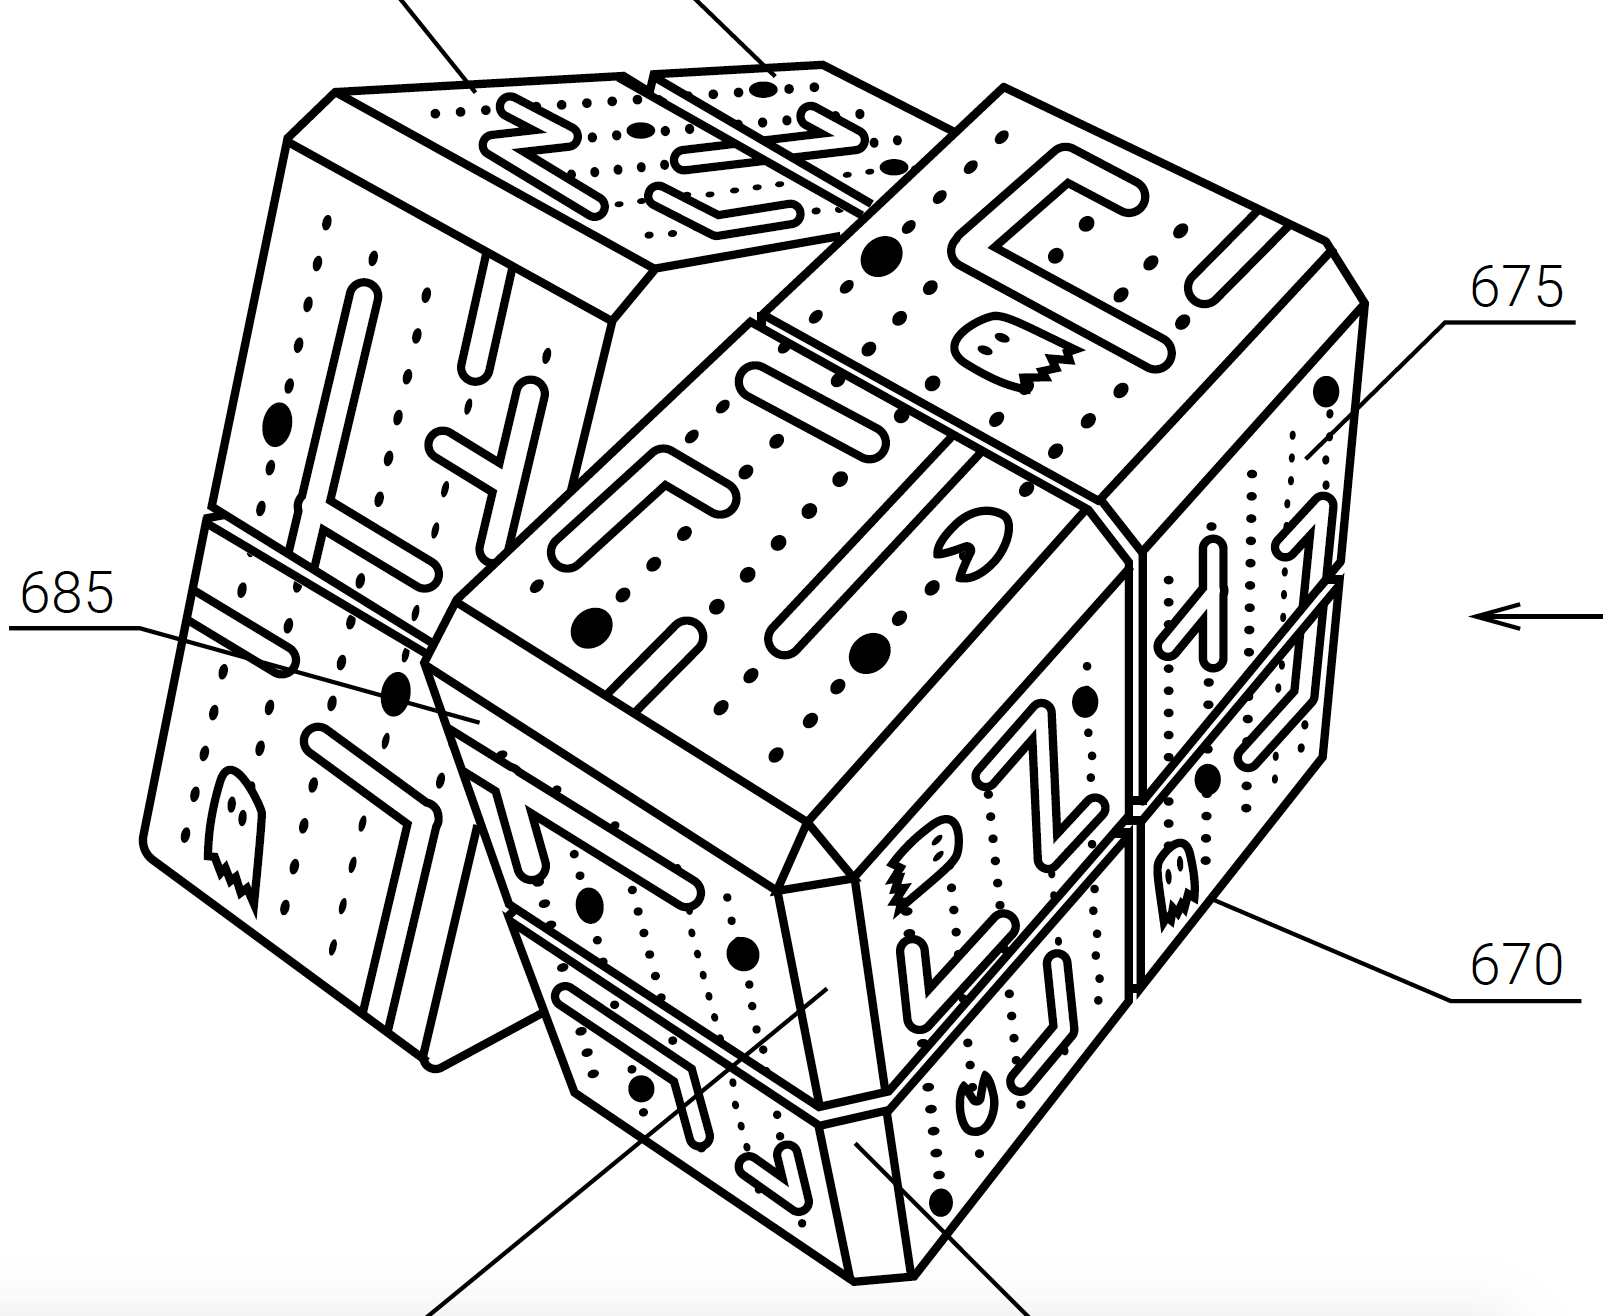 WOWCube - Wikipedia